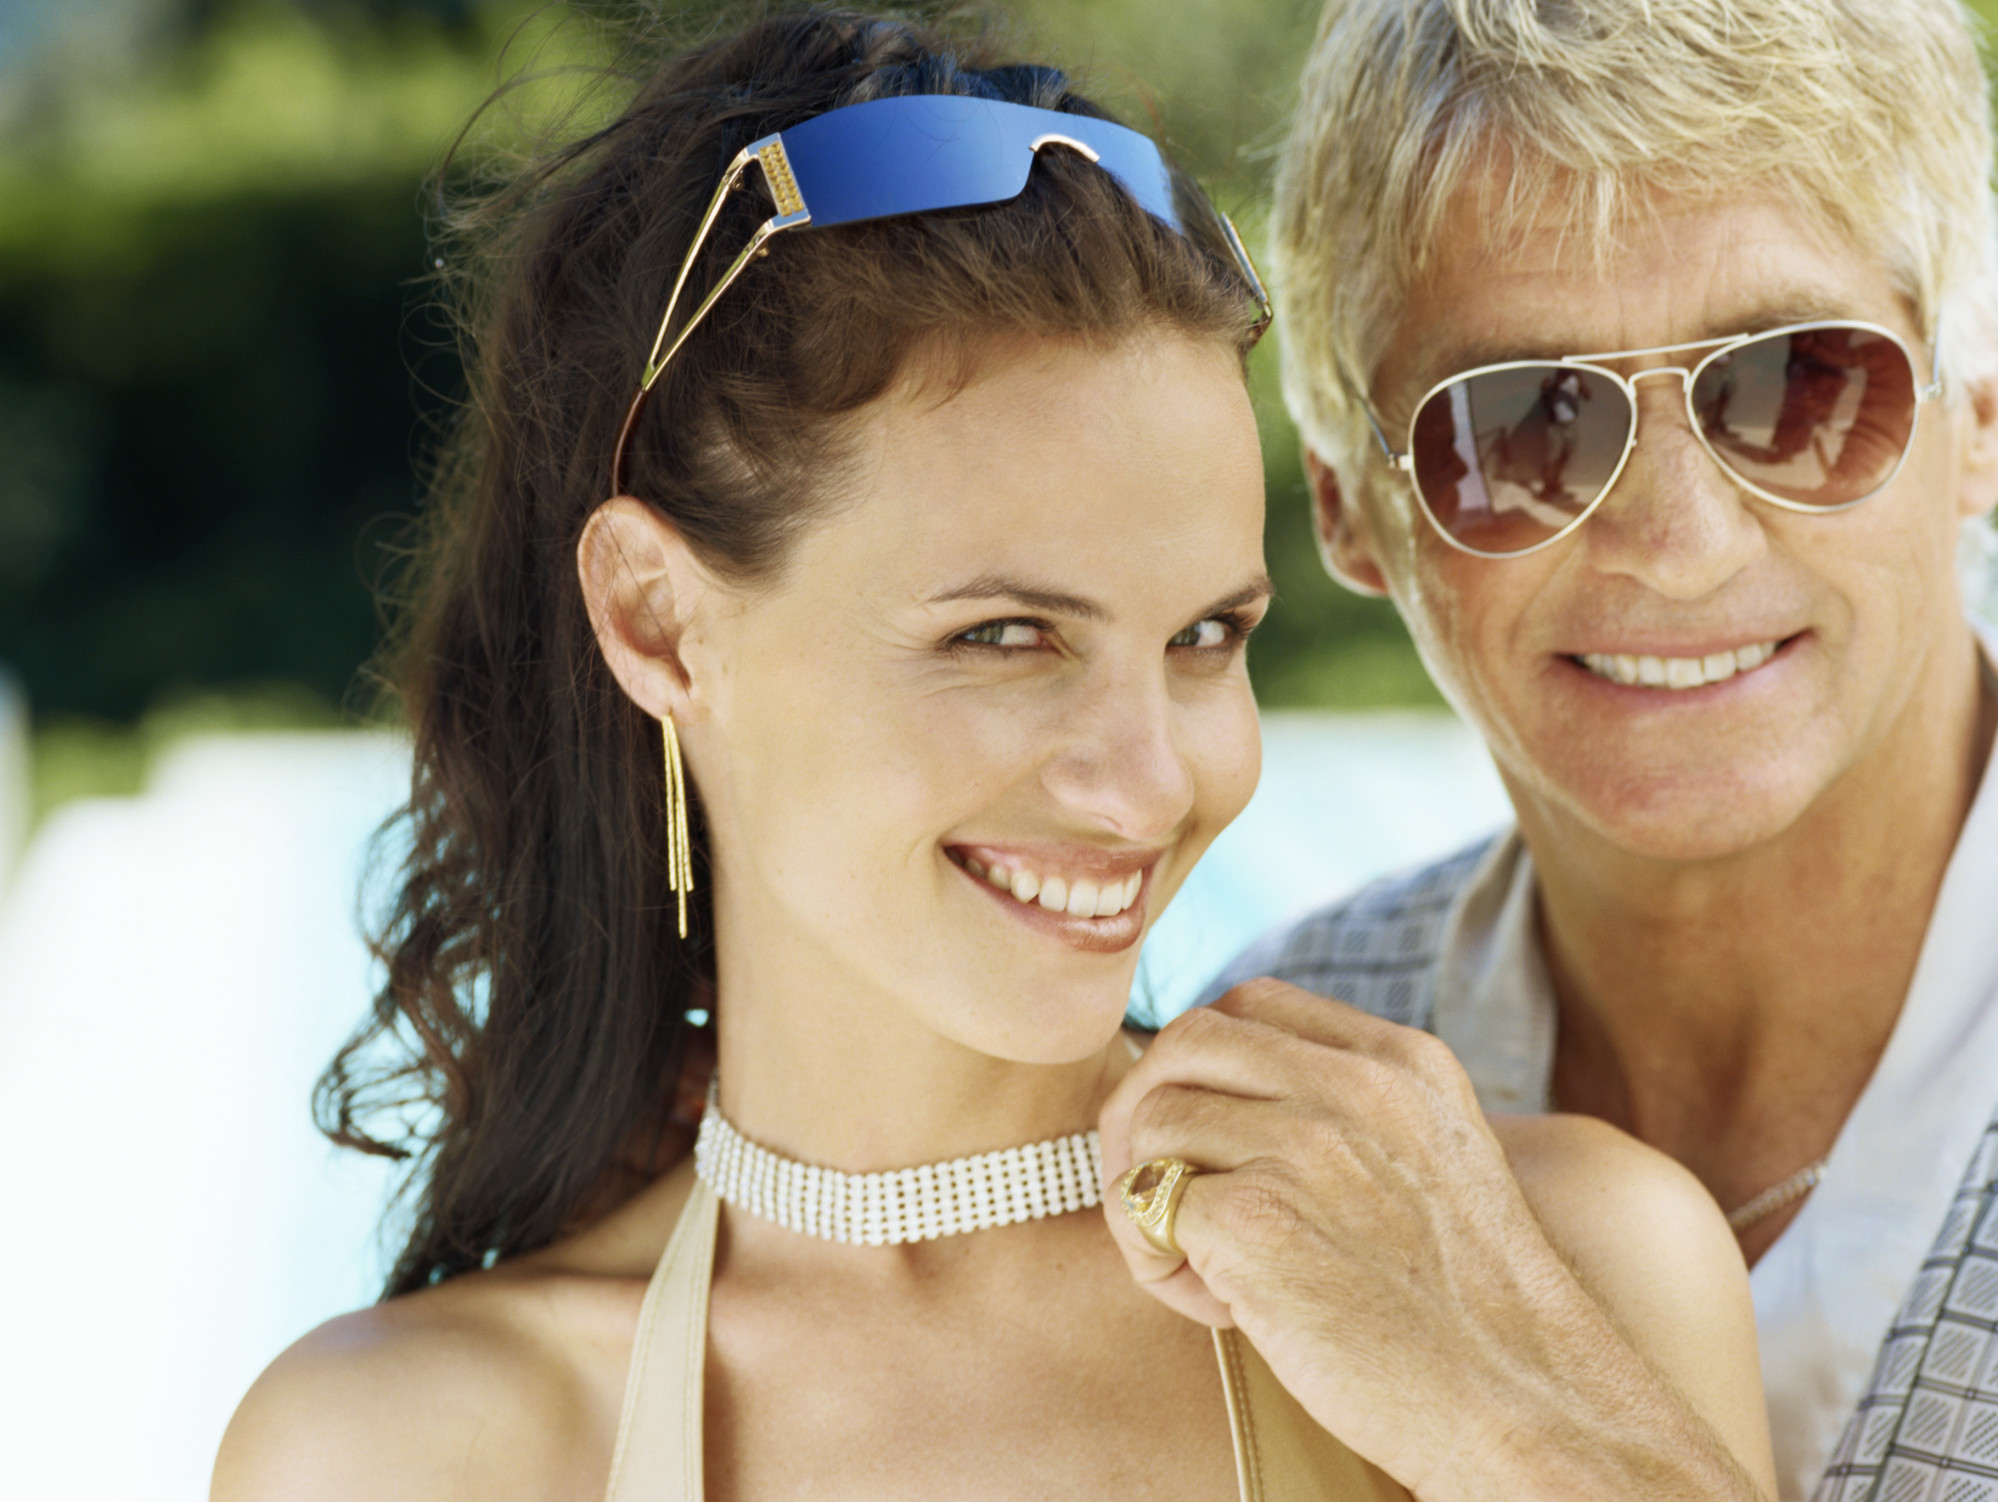 Dating a way older guy dating